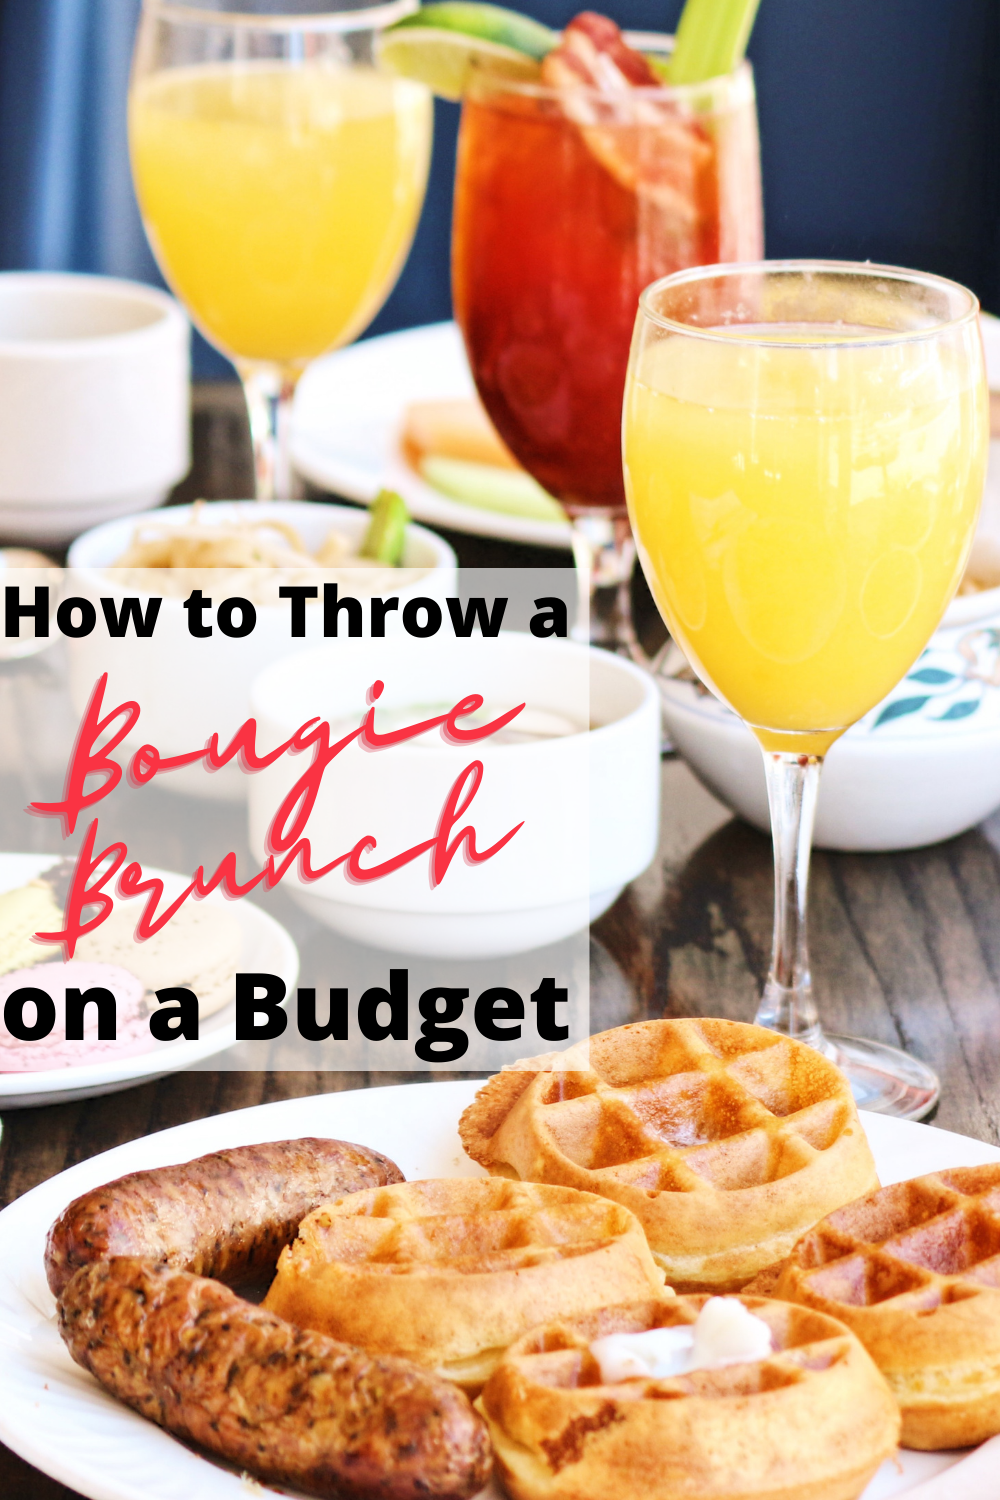 Throw a bougie brunch on a budget with waffles and drinks